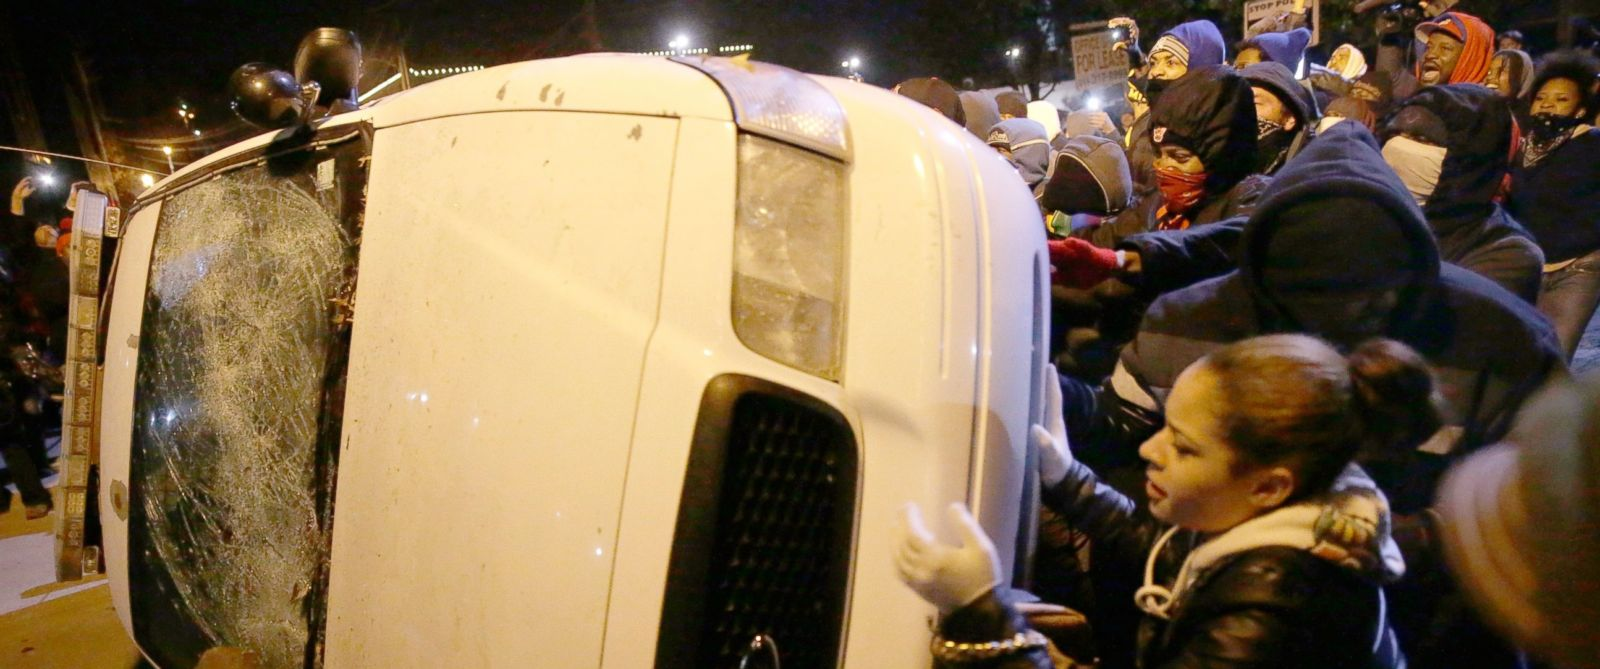 PHOTO: Protesters vandalize a police vehicle outside of the Ferguson city hall, Nov. 25, 2014, in Ferguson, Mo.